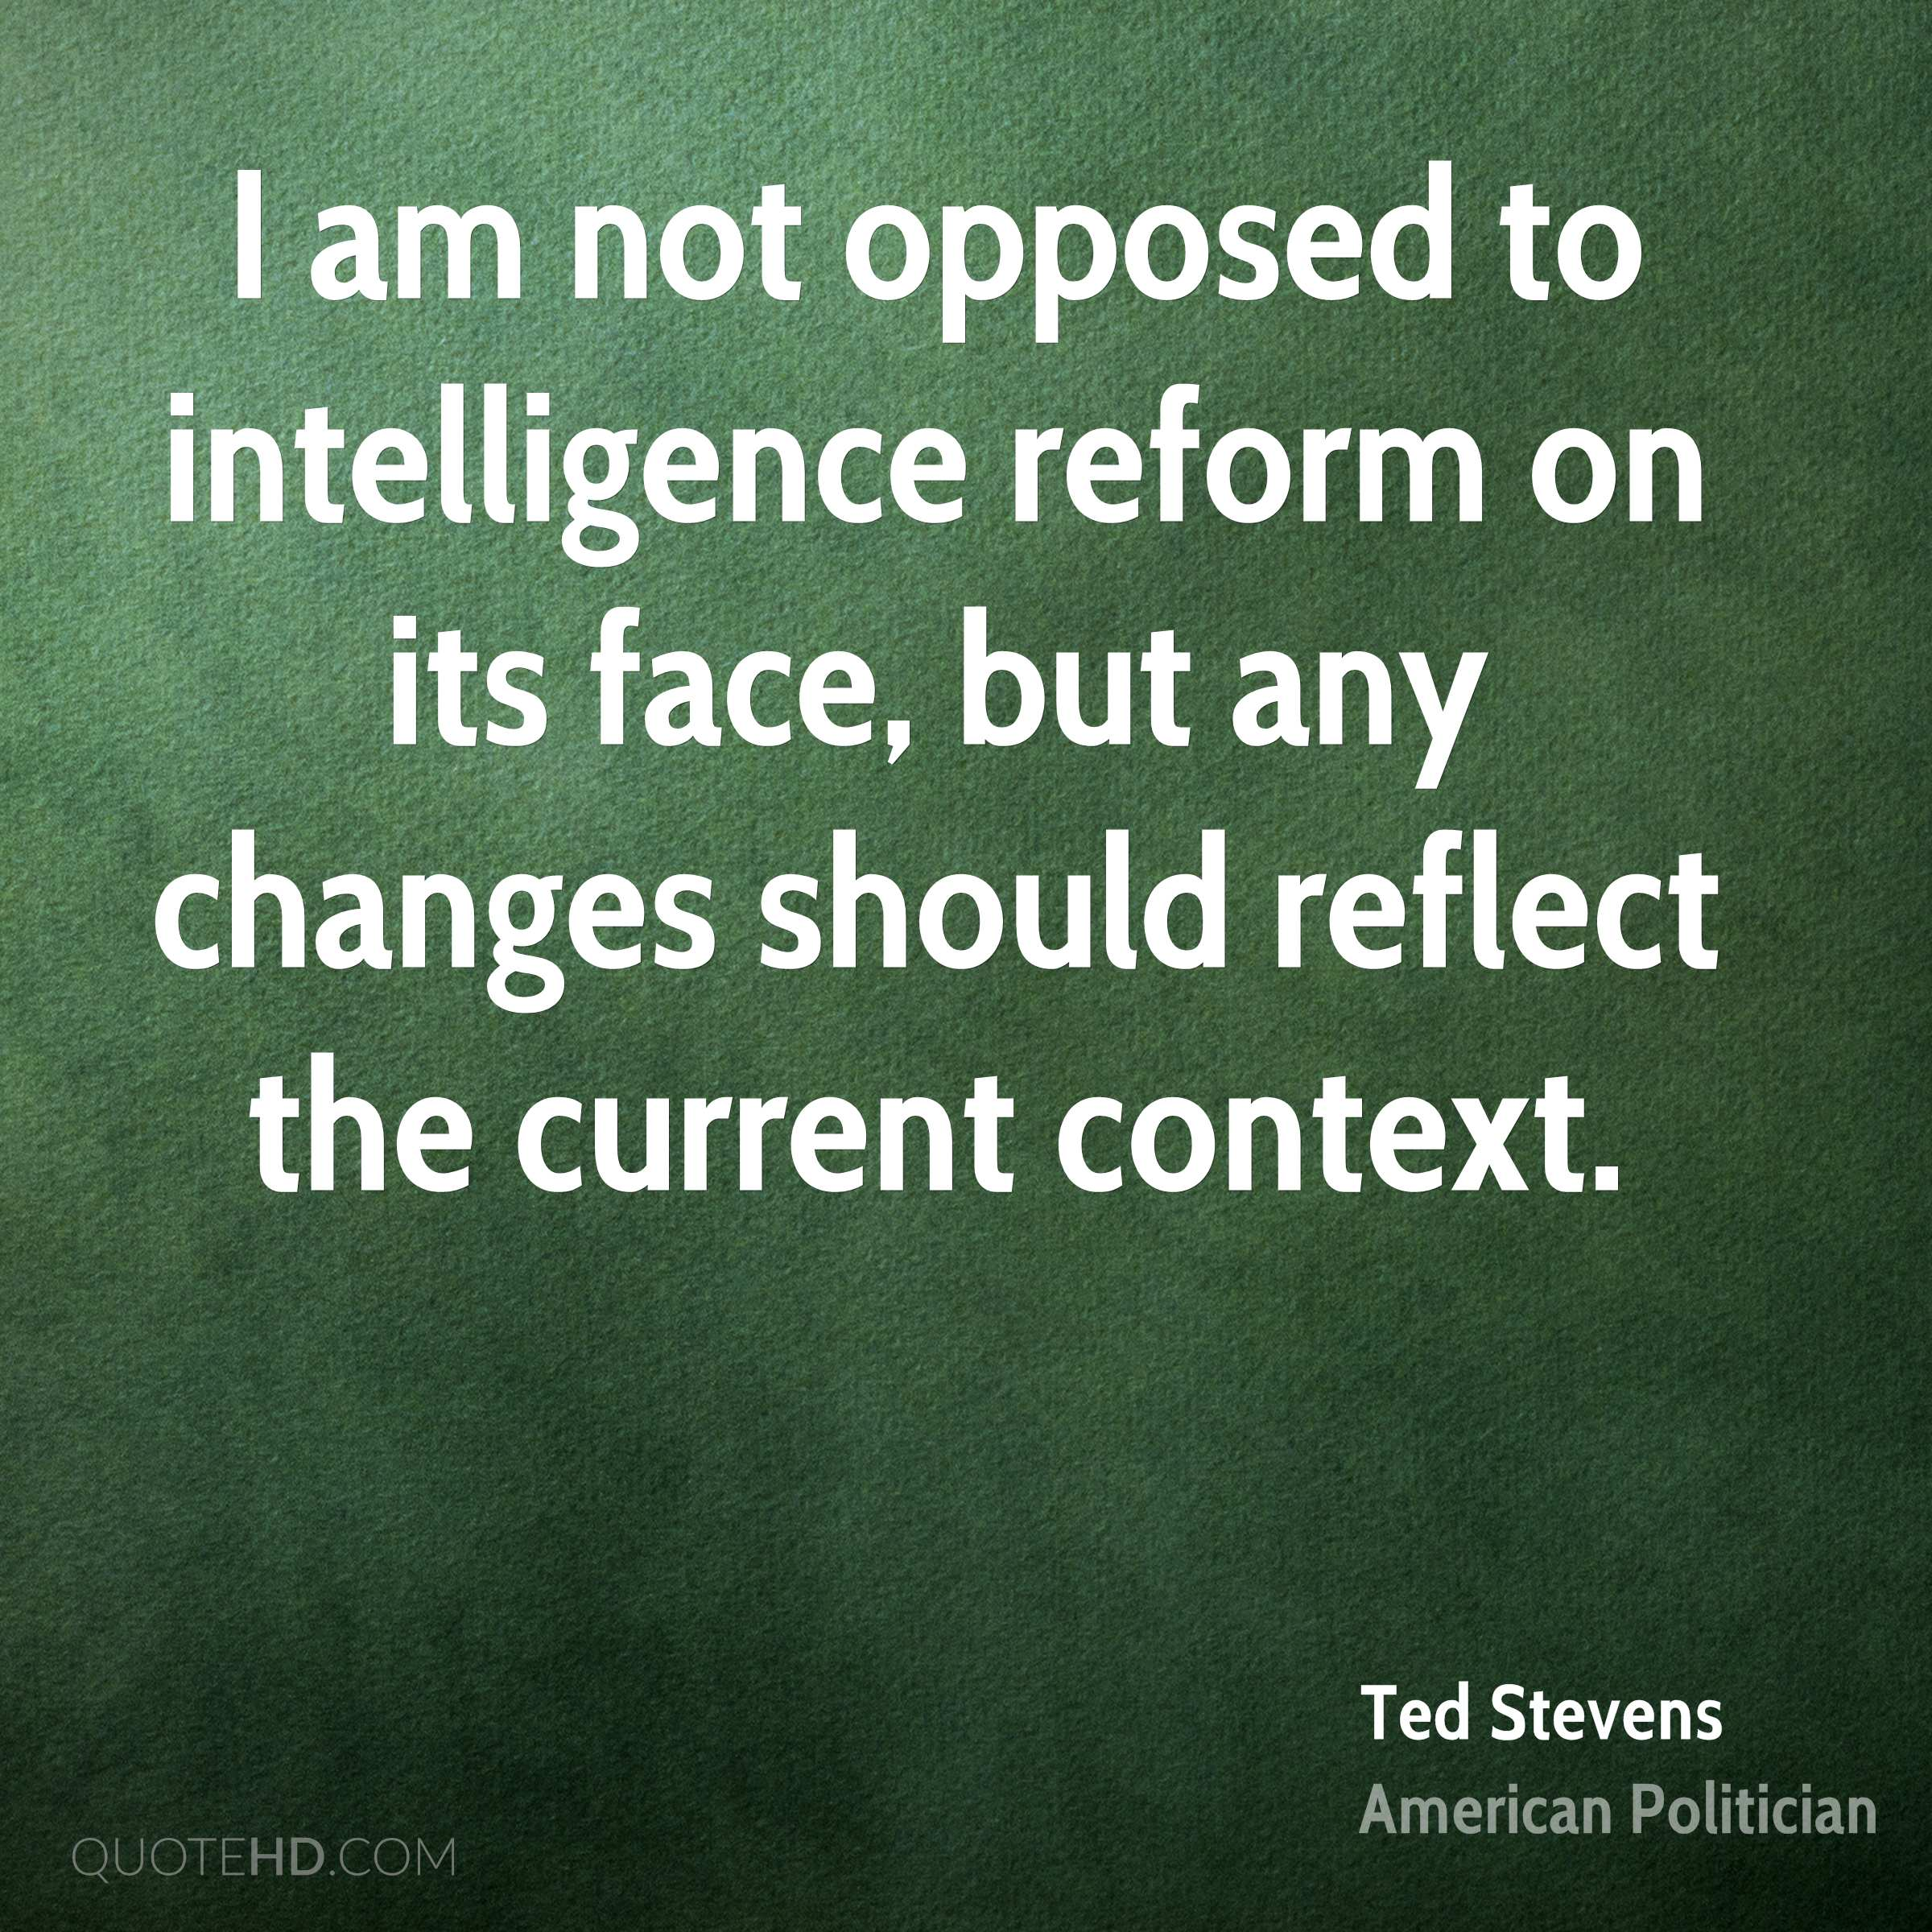 I am not opposed to intelligence reform on its face, but any changes should reflect the current context.